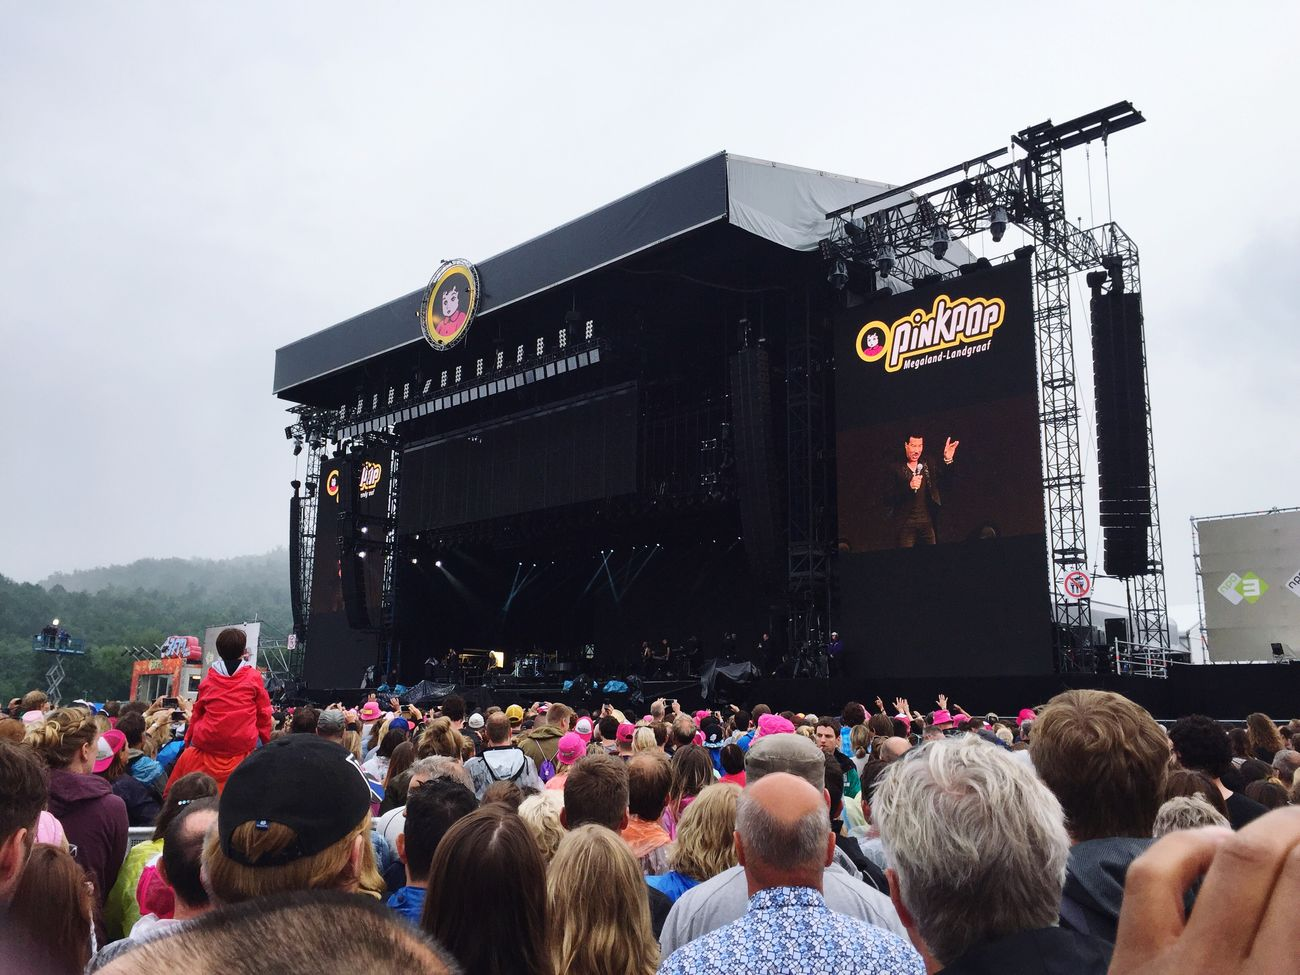 Lionel Richie Live Music Pinkpop 2016 Festival Awesome Weekend Enjoying Life Drinking With Friends